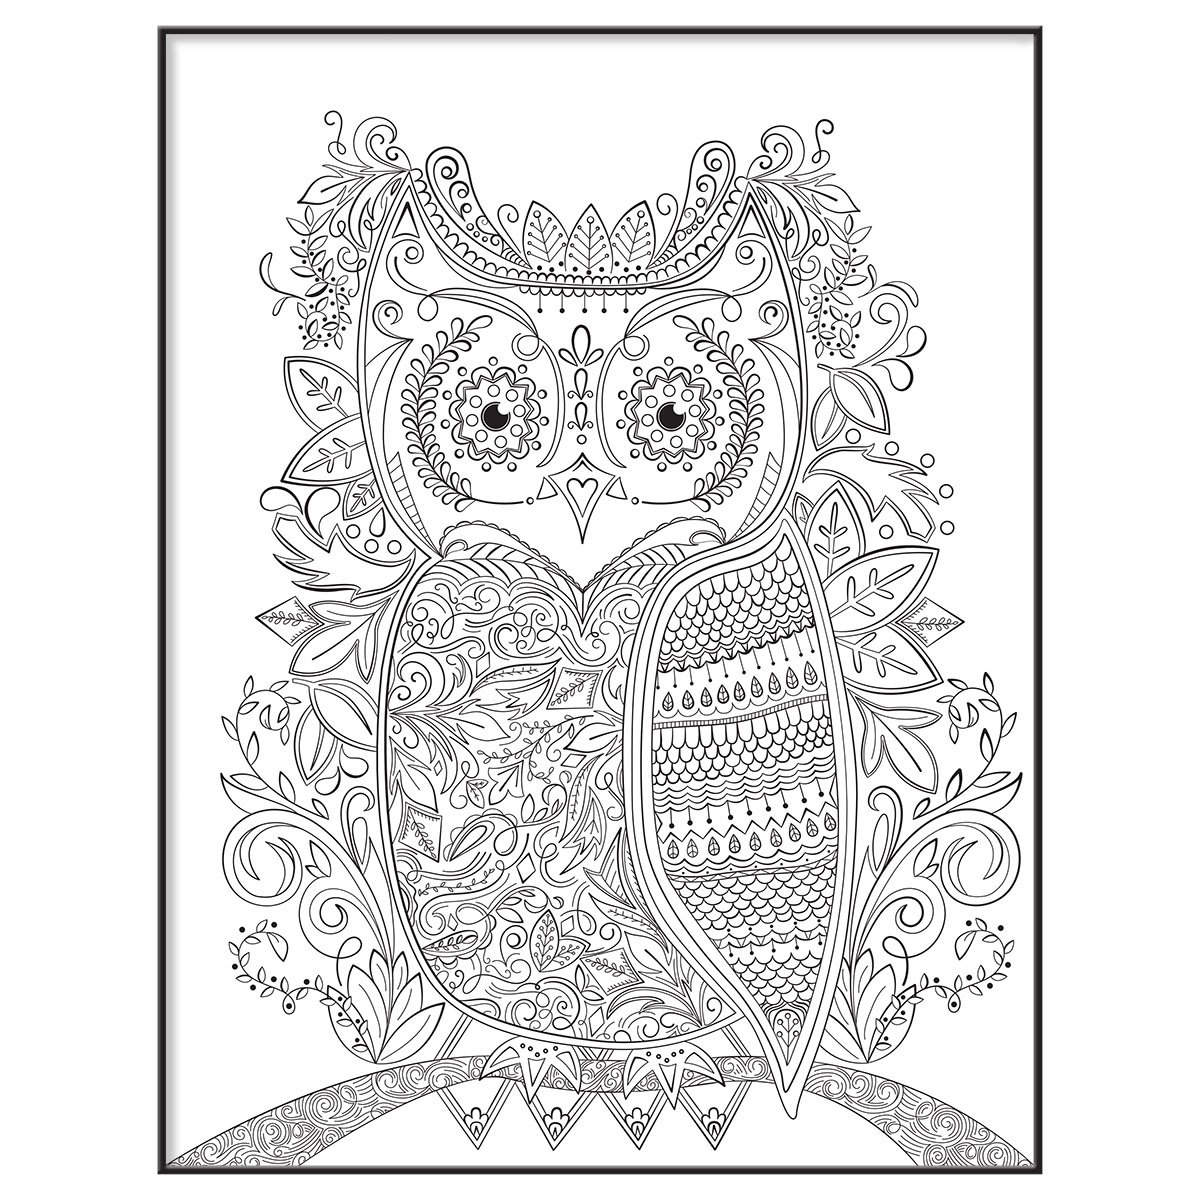 Owl Design 65633 MCS 10x13 Inch Time-Out Color-in Frame Adult Coloring Page MCS Industries